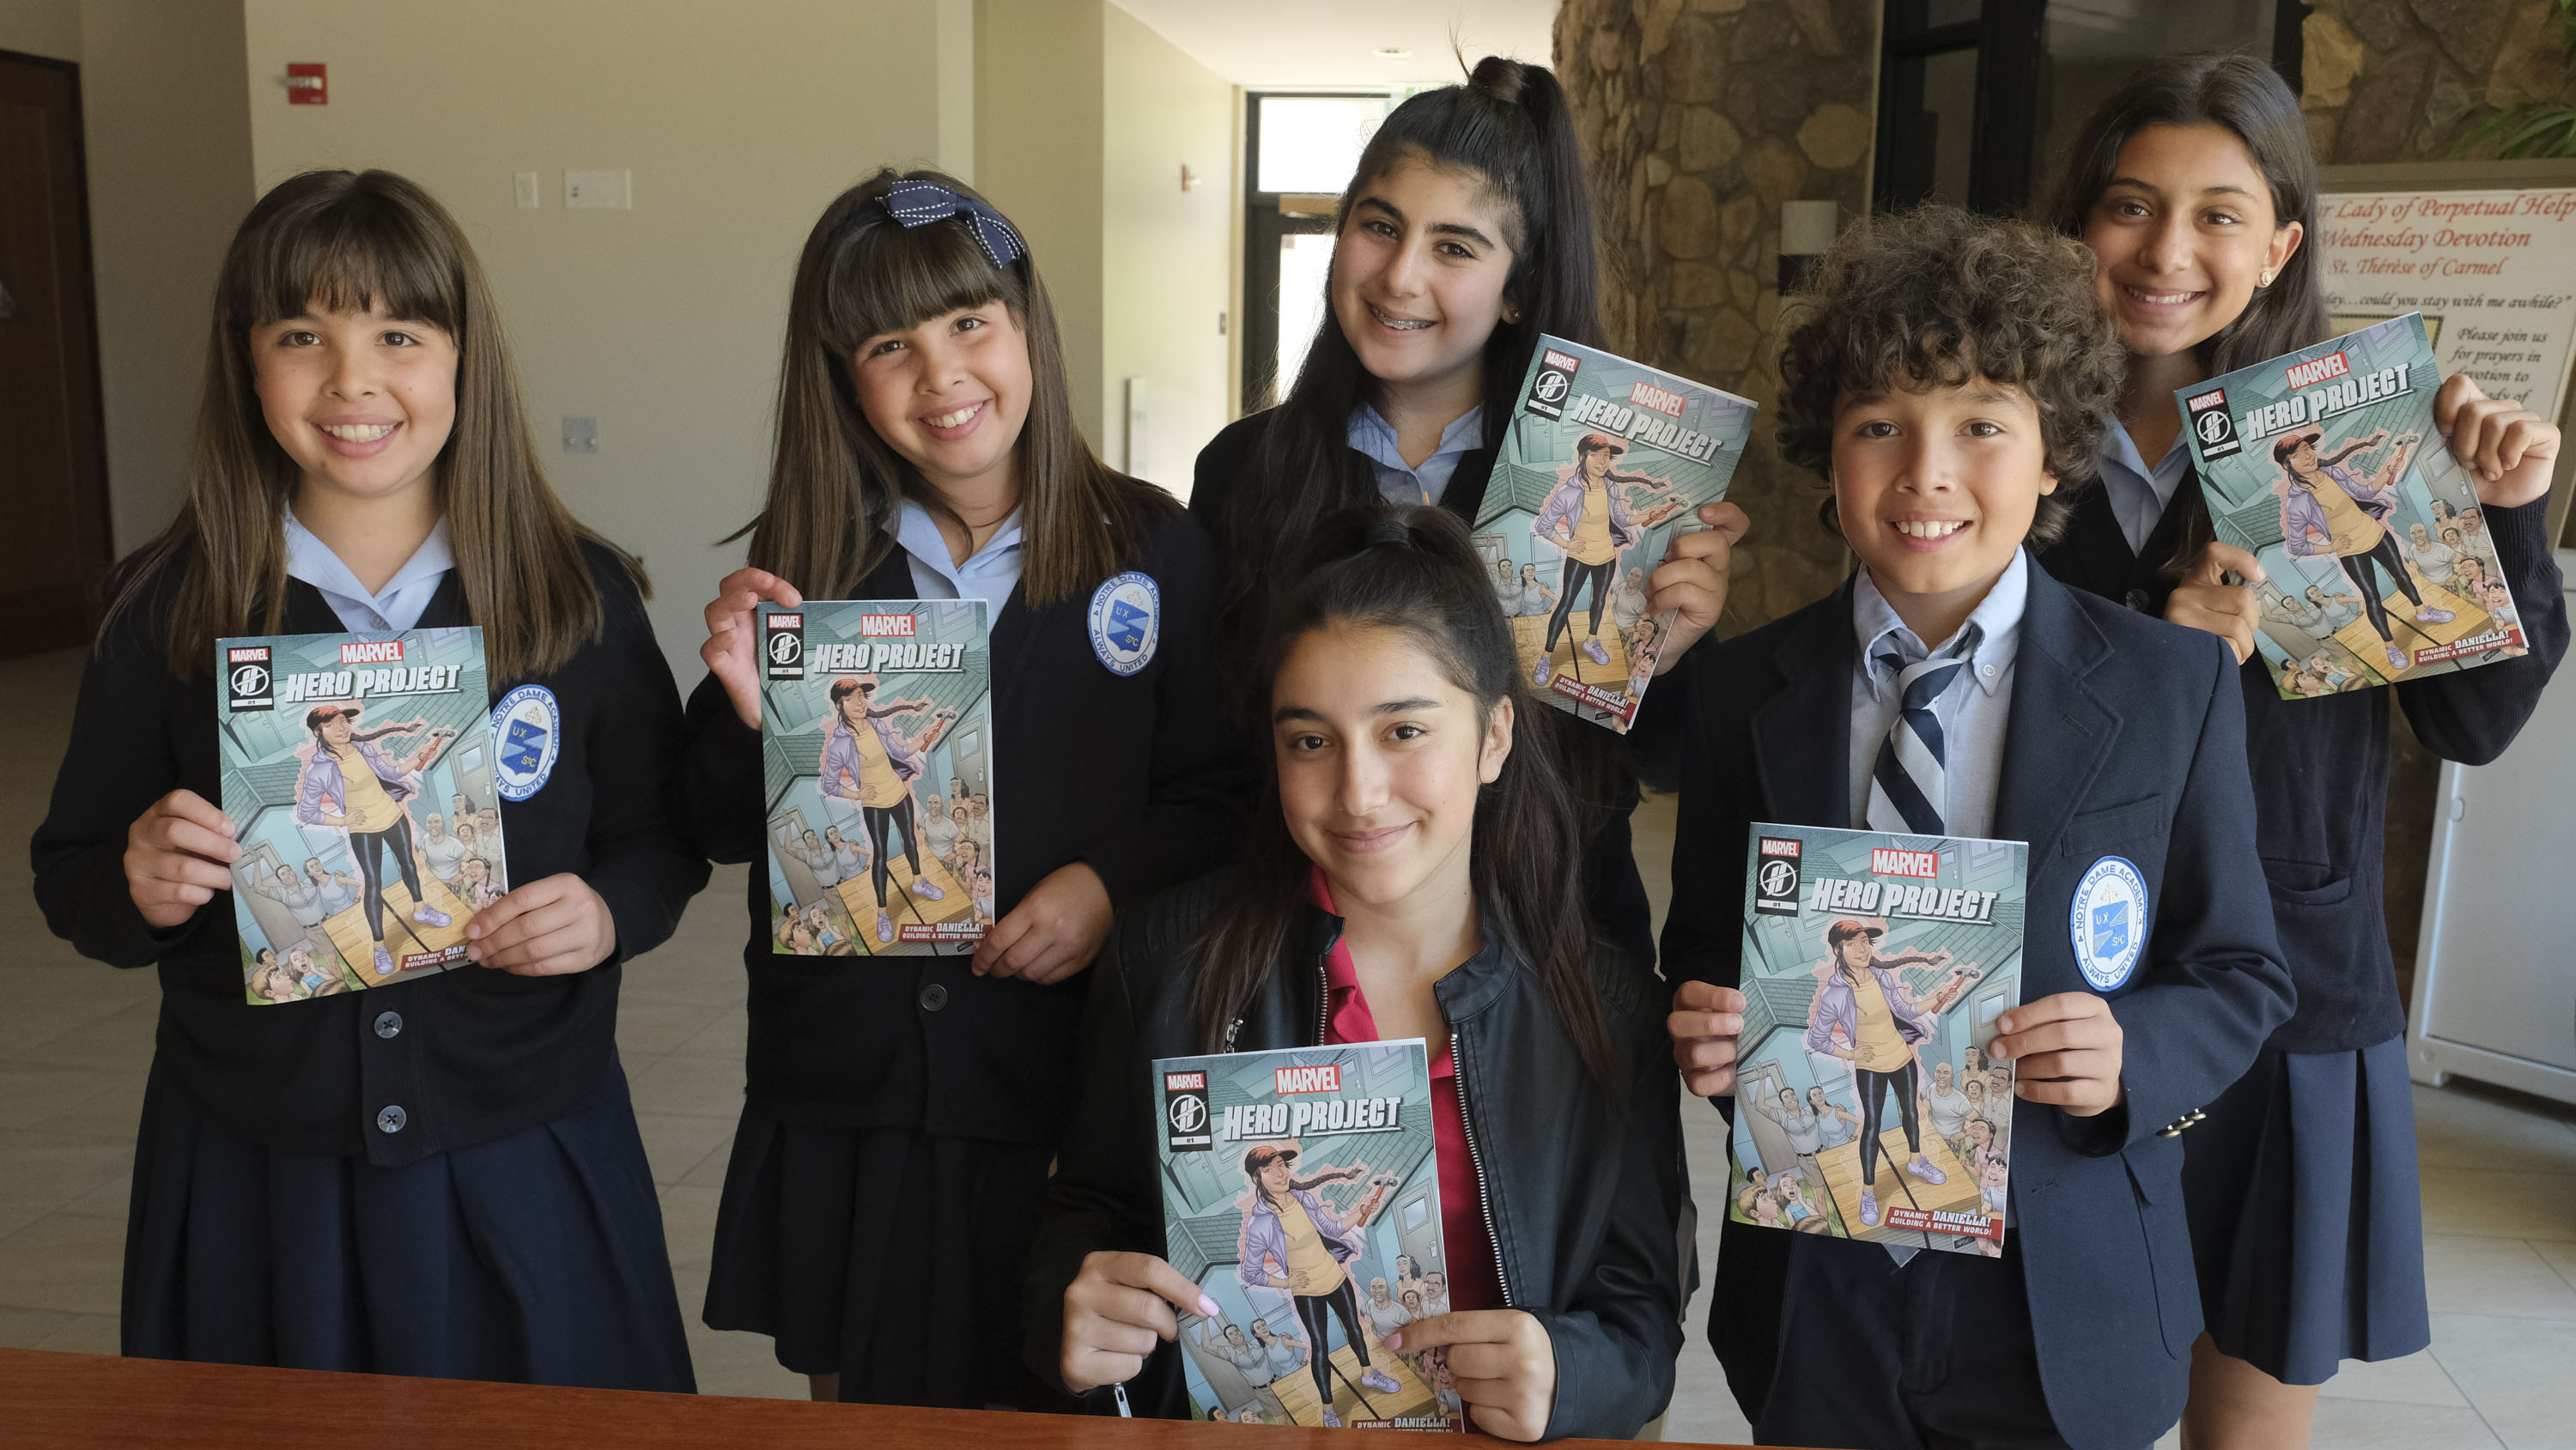 Meet 'Dynamic Daniella,' the Teen Girl Marvel Turned Into a Comic Book Hero Because of Her Charitable Work